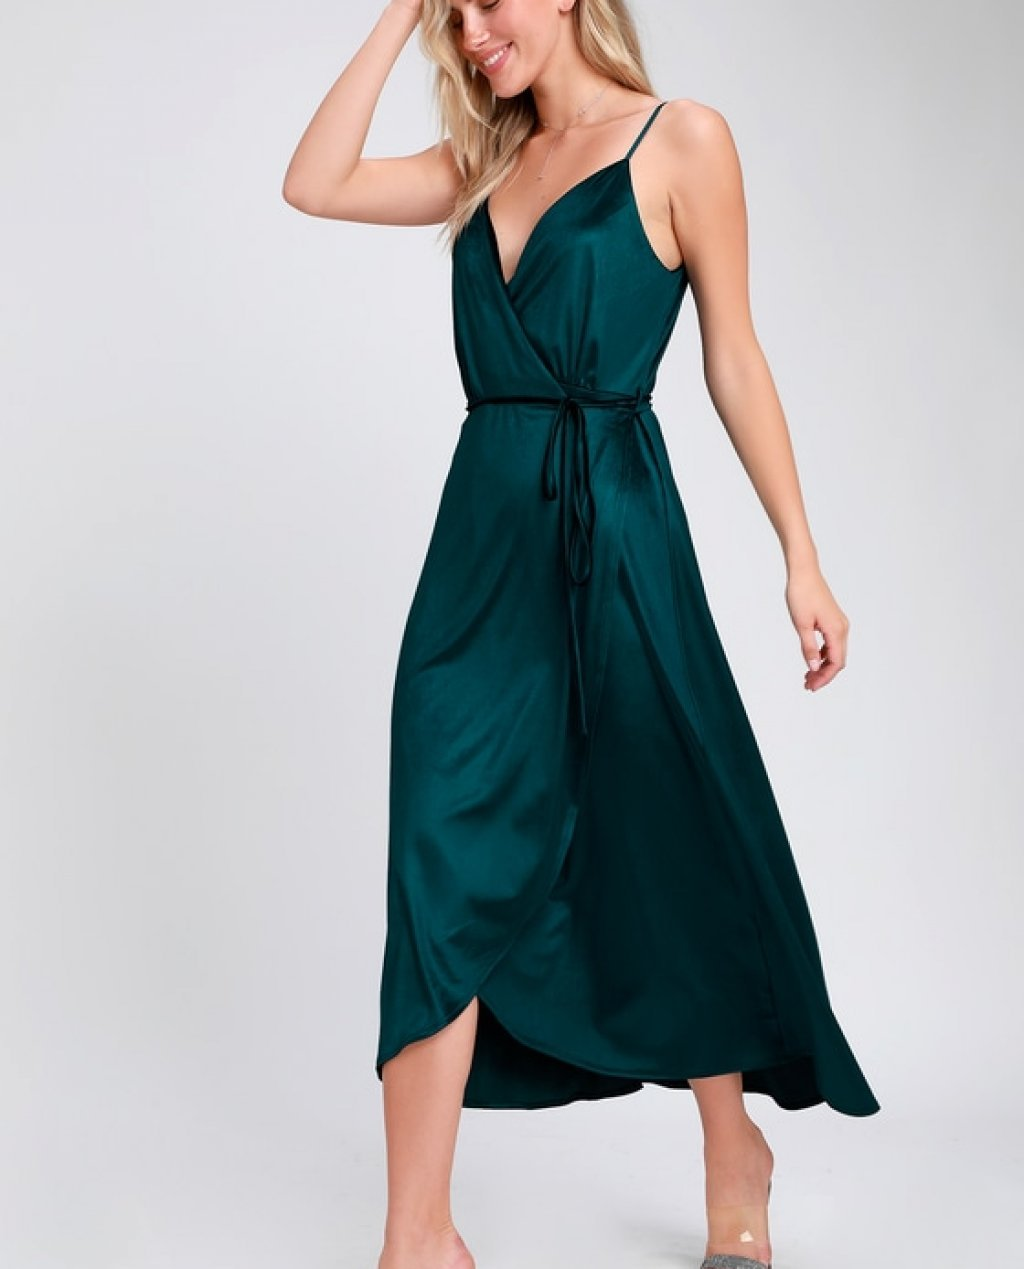 Starlight Starbright Teal Blue Velvet High-Low Wrap Dress